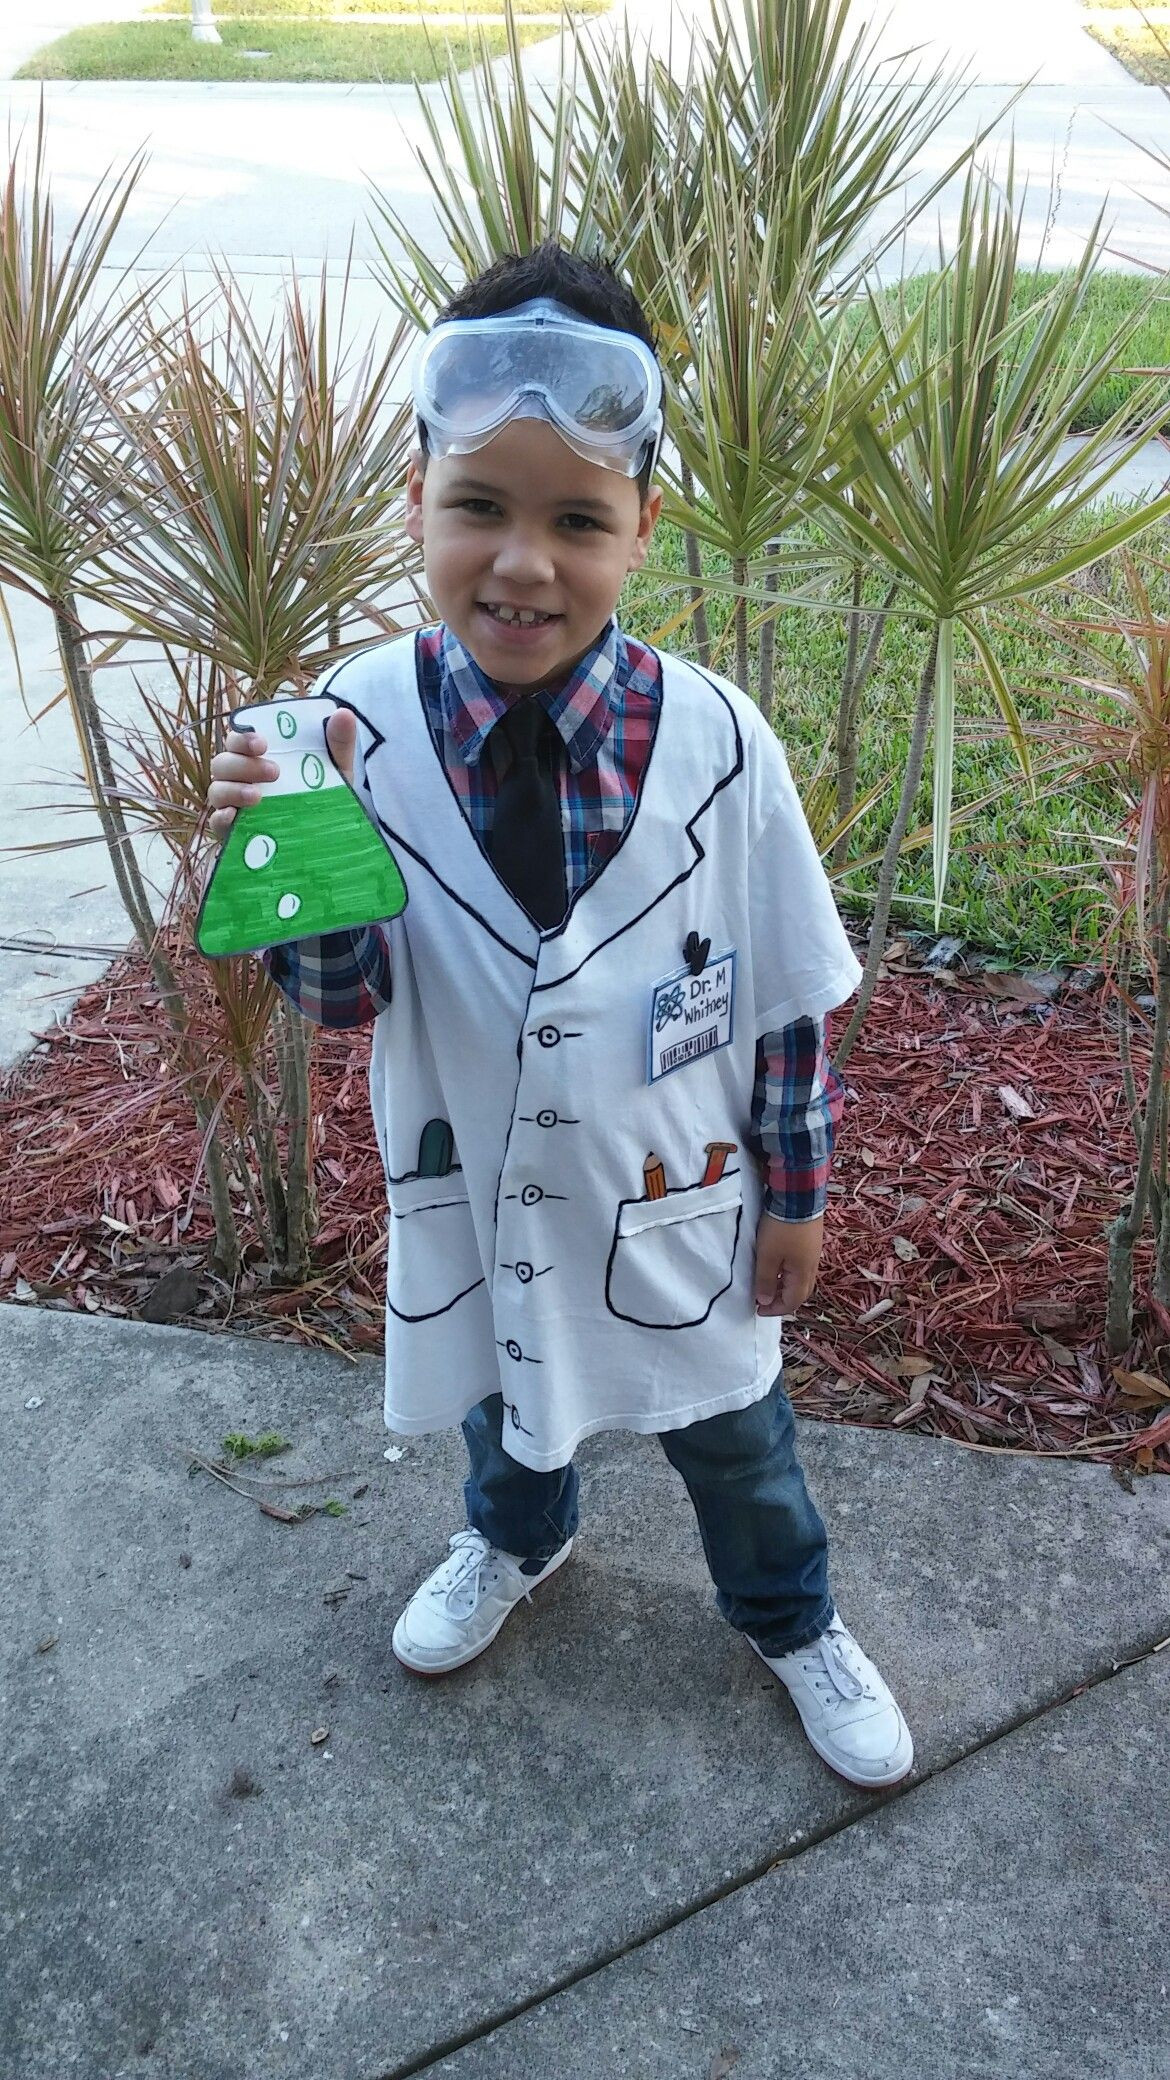 Best ideas about DIY Mad Scientist Costume . Save or Pin T shirt and marker scientist lab coat for career day at Now.